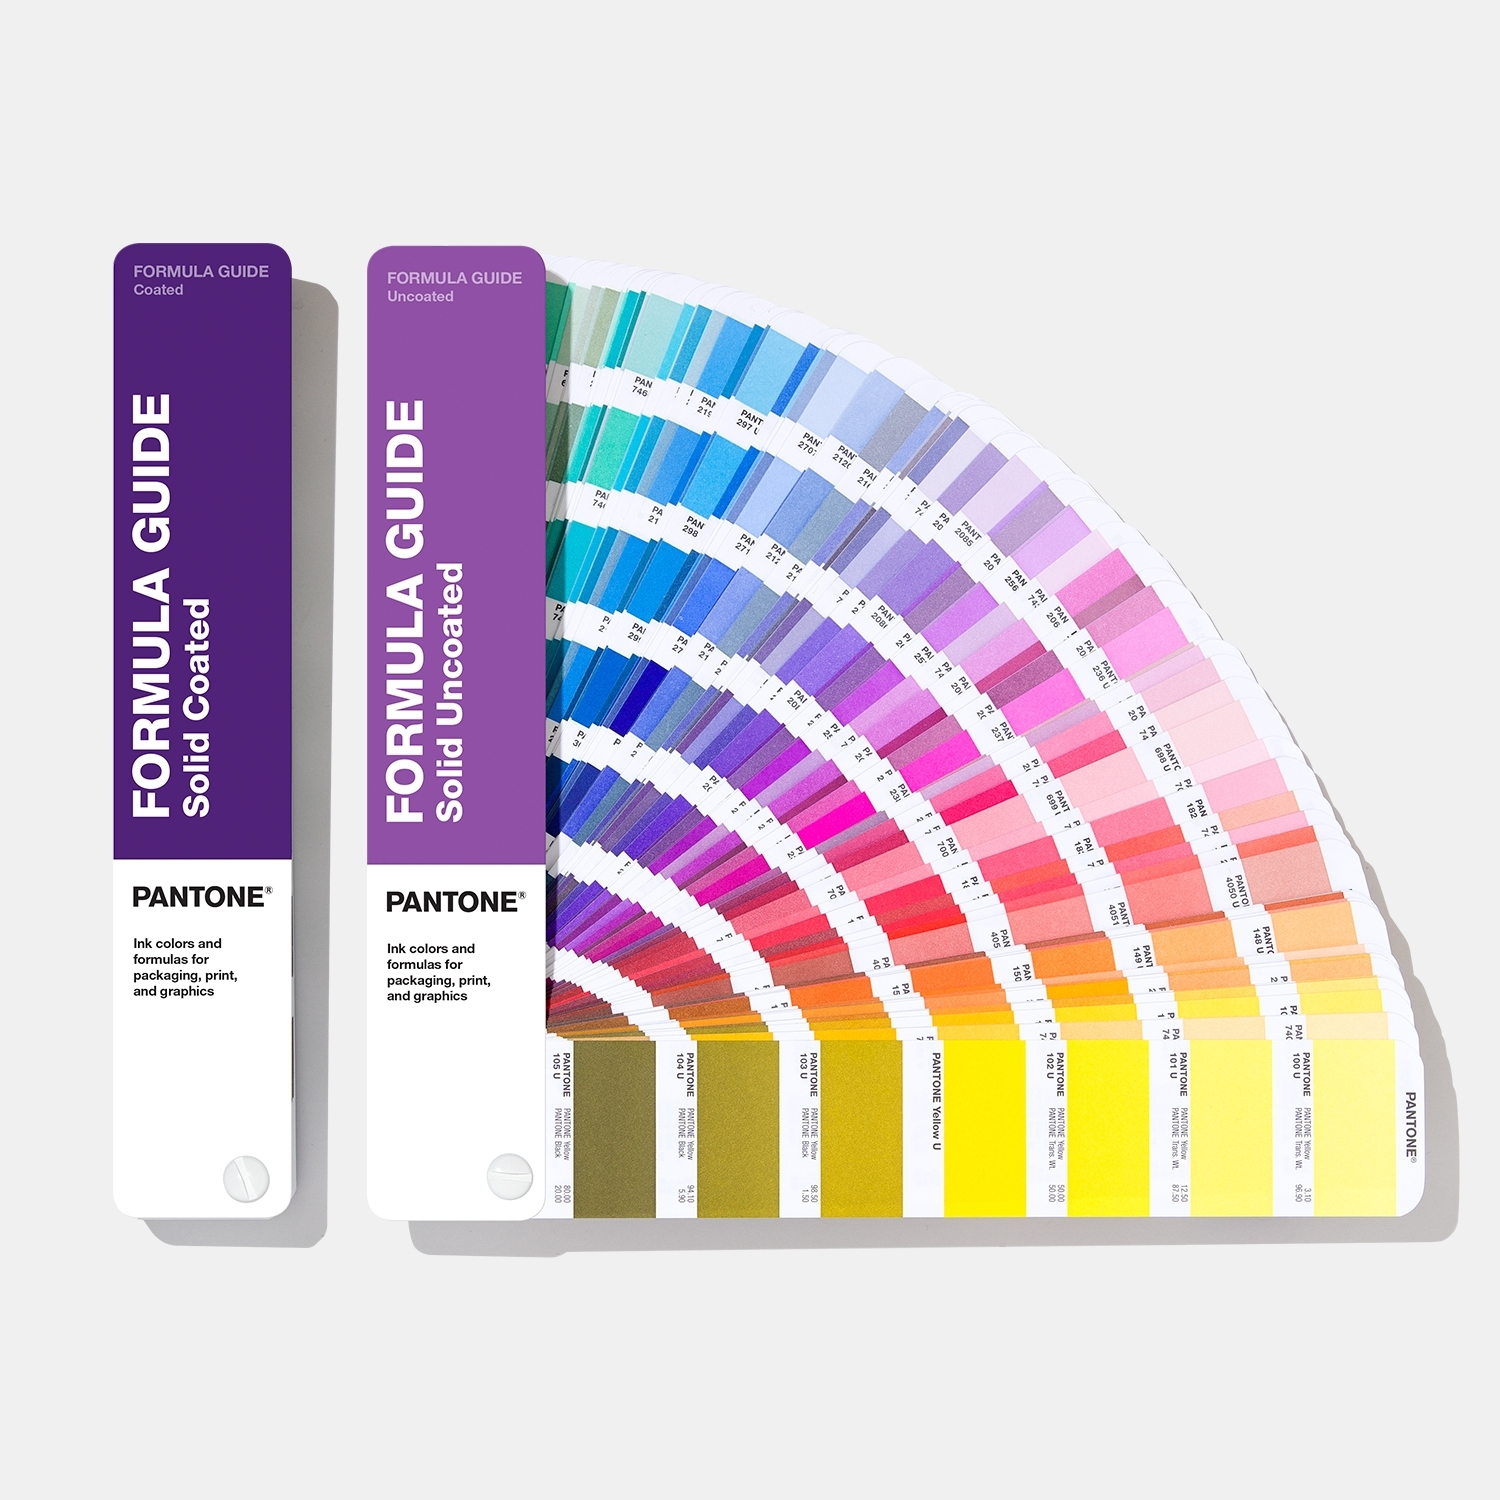 Pantone Formula Guide | Coated & Uncoated Visualize and communicate color for graphics and print - View 3